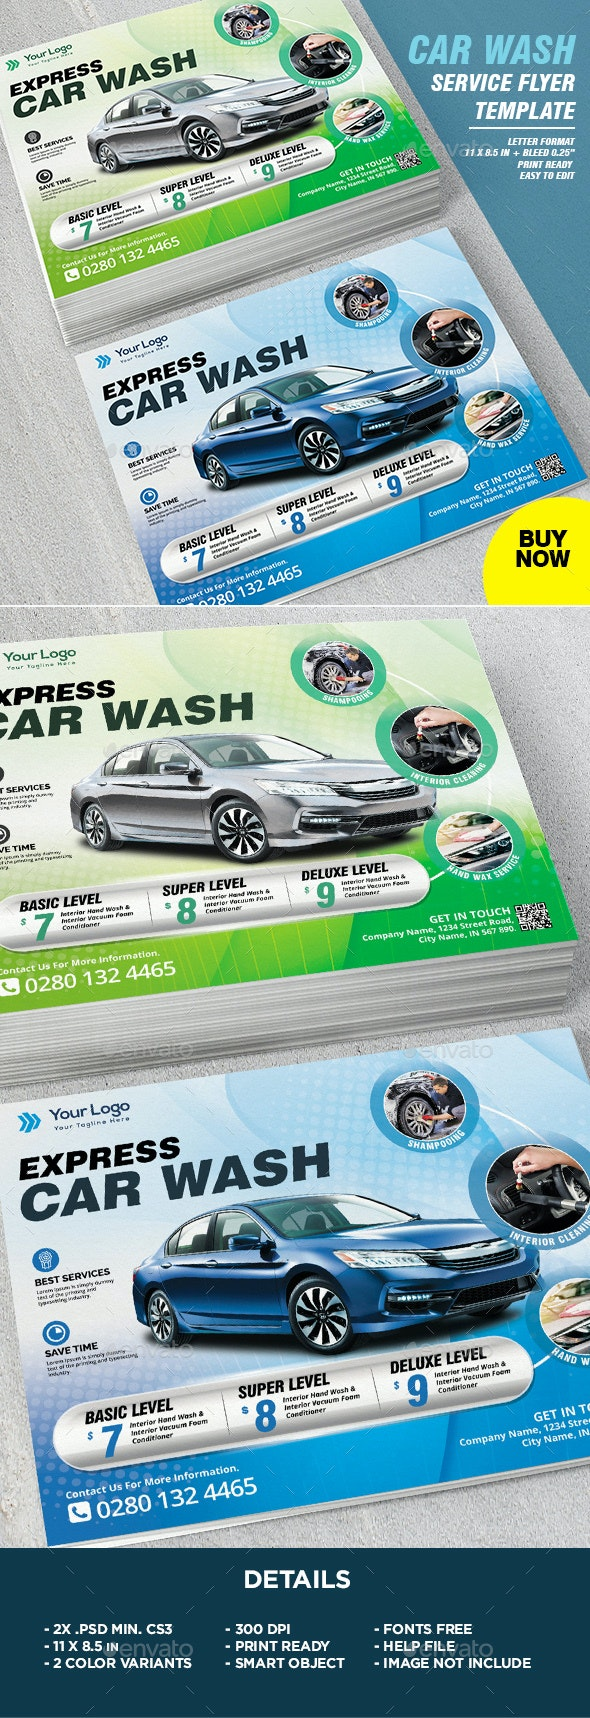 Car Wash Service Flyer Template - Corporate Flyers